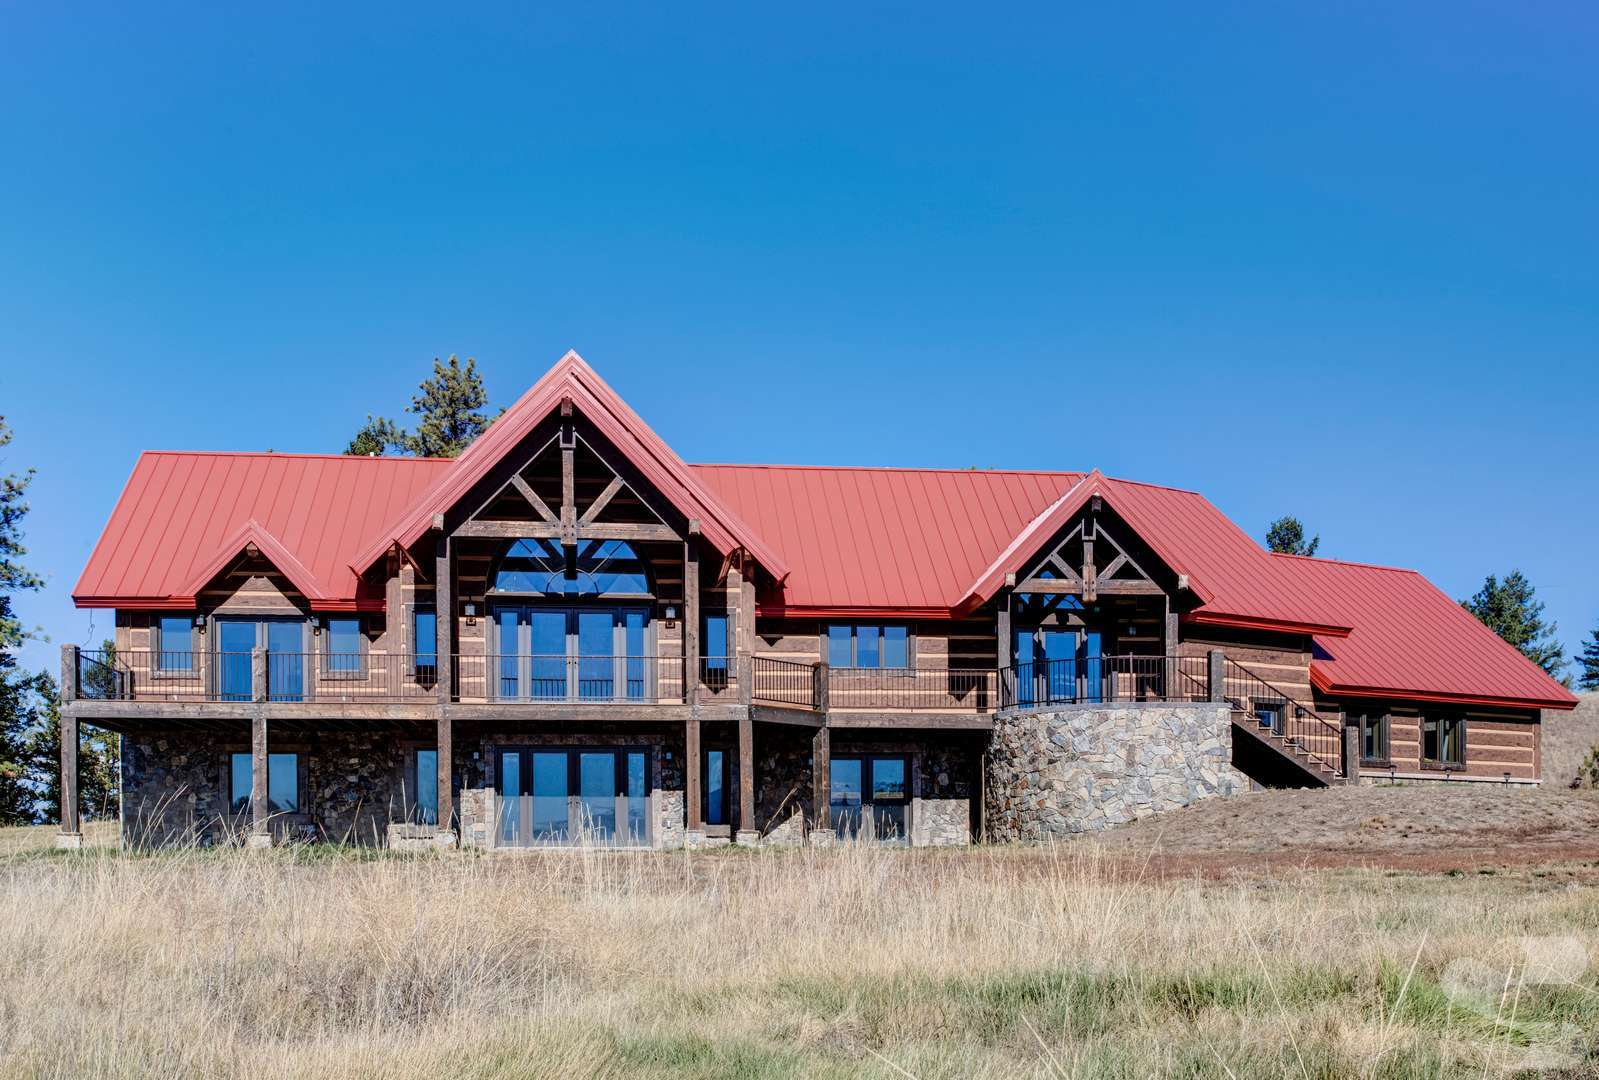 "16"" Hand-Hewn EverLog Siding in Natural Brown with Tahoe Gold Weatherall Chinking installed directly to Insulated Concrete Form (ICF) walls."